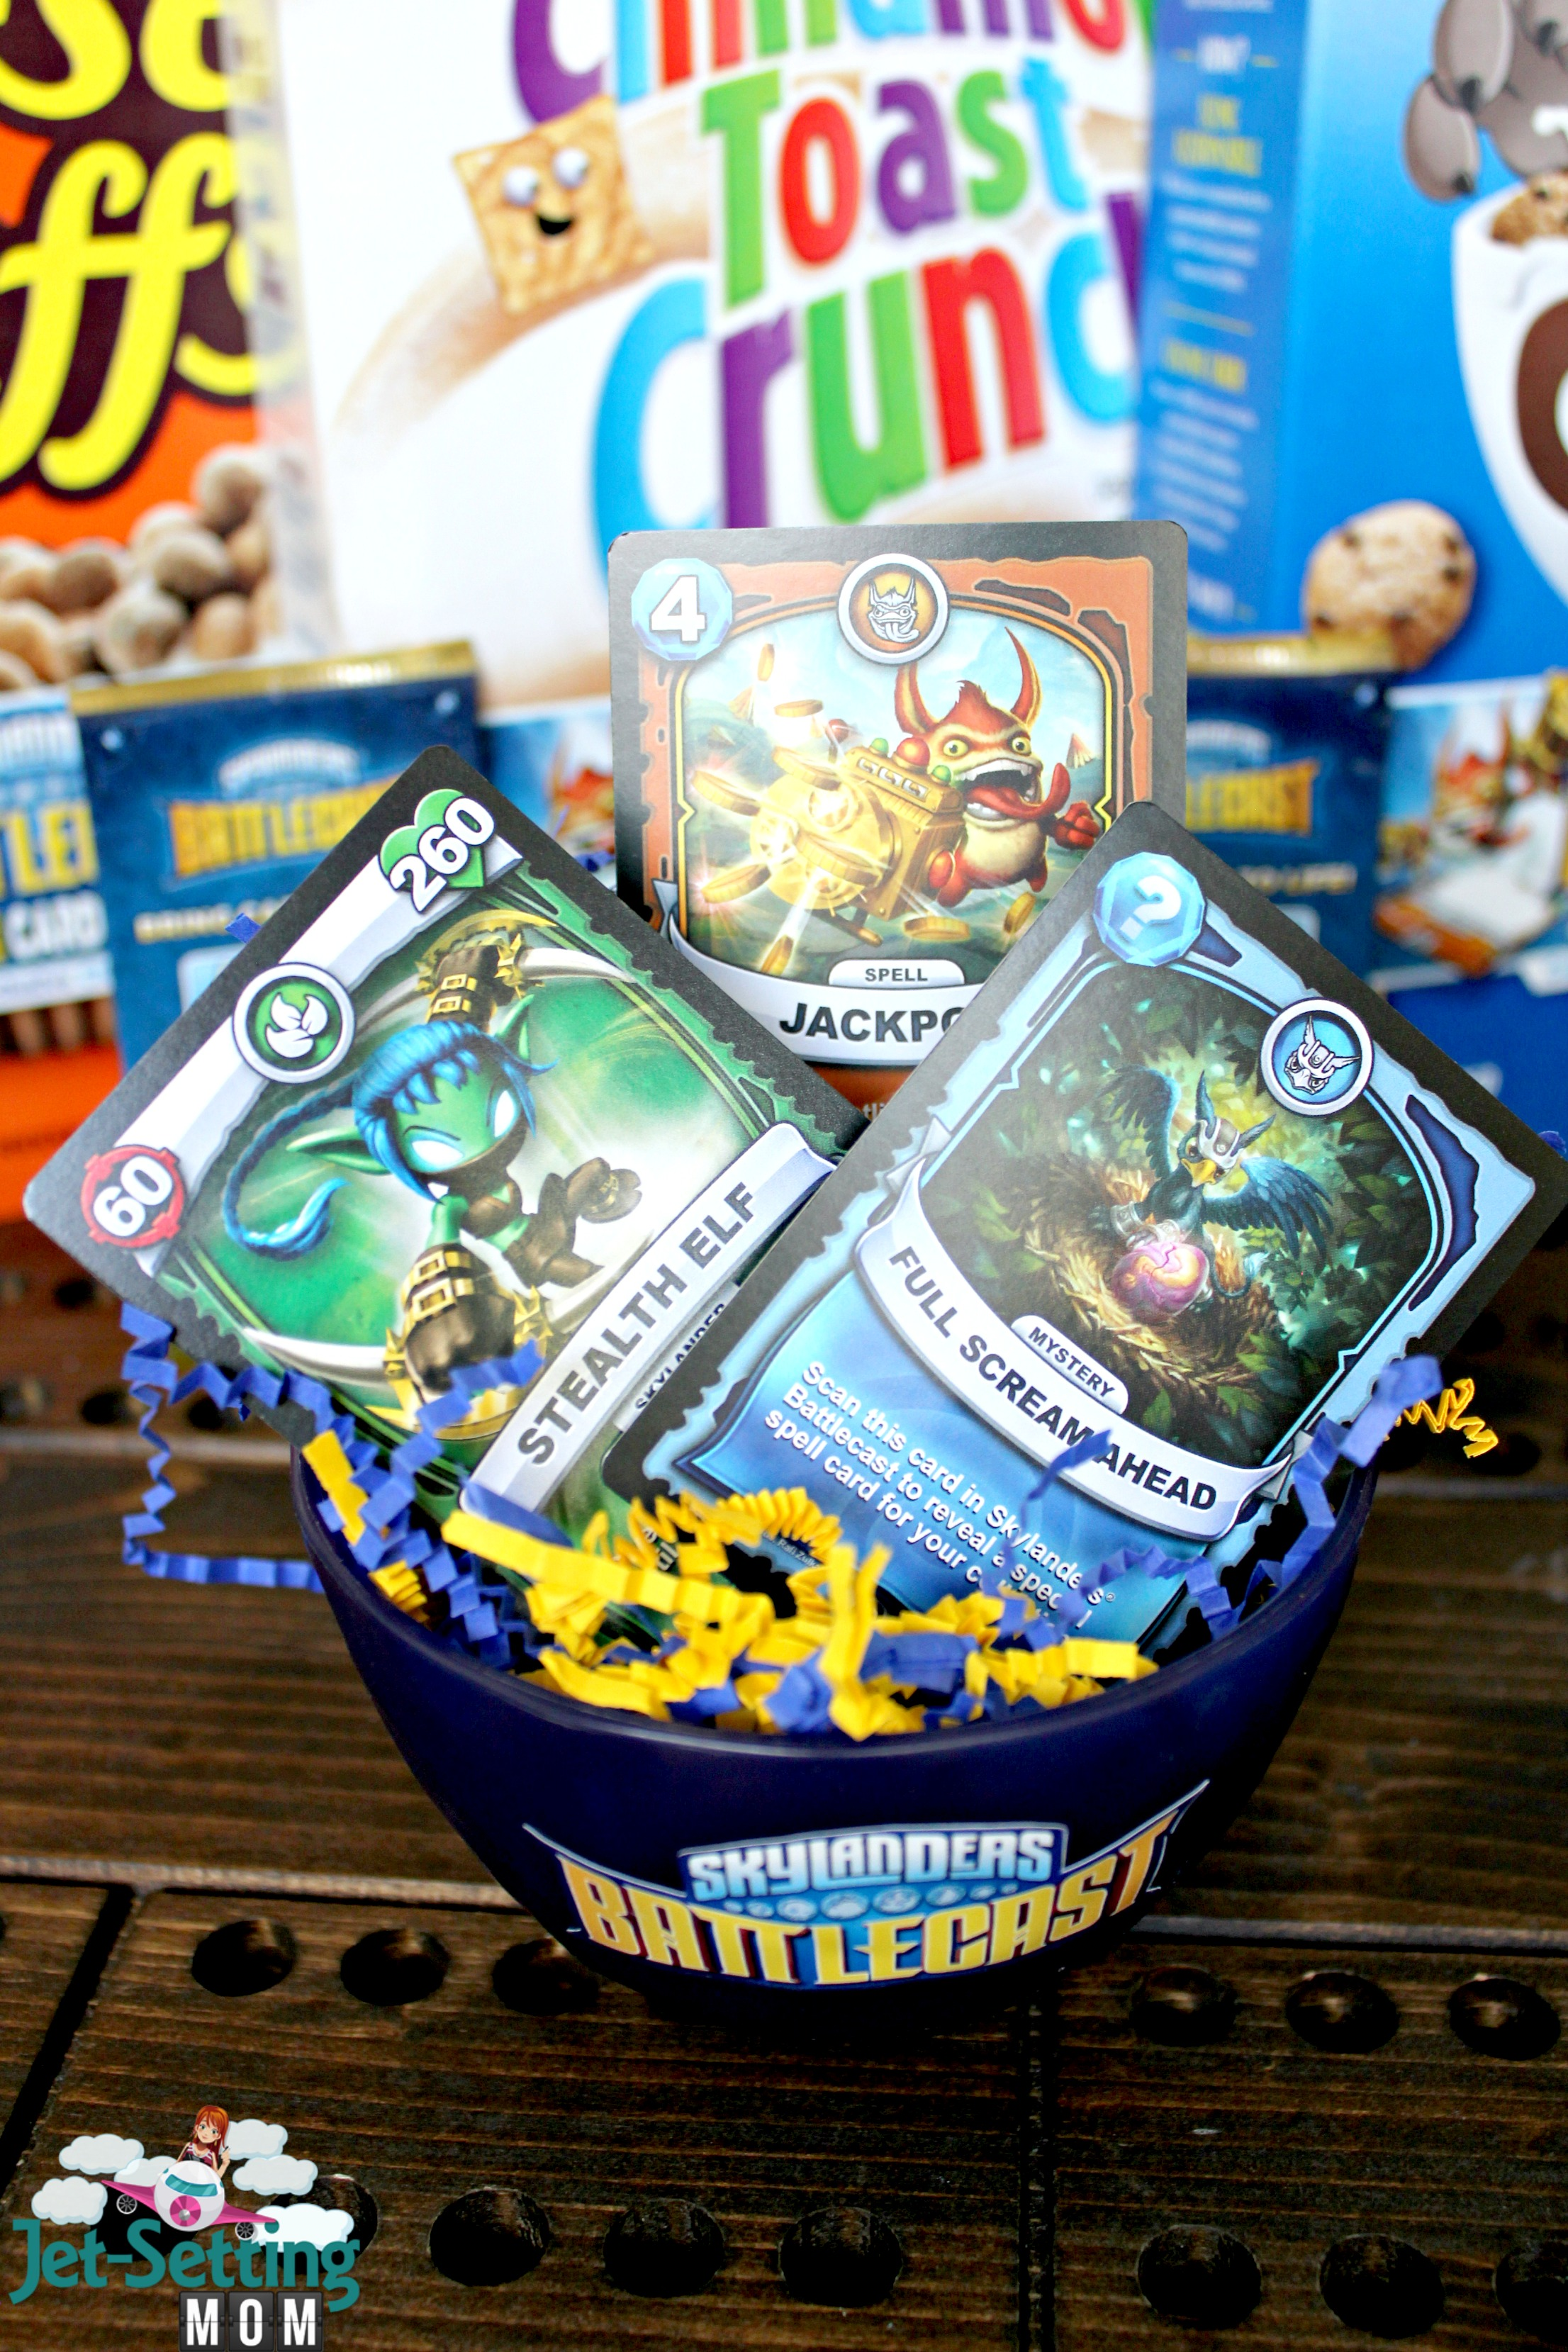 Find exclusive Skylanders #Battlecast cards in specially marked boxes of General Mills Cereals! #BigGBattlecast #ad